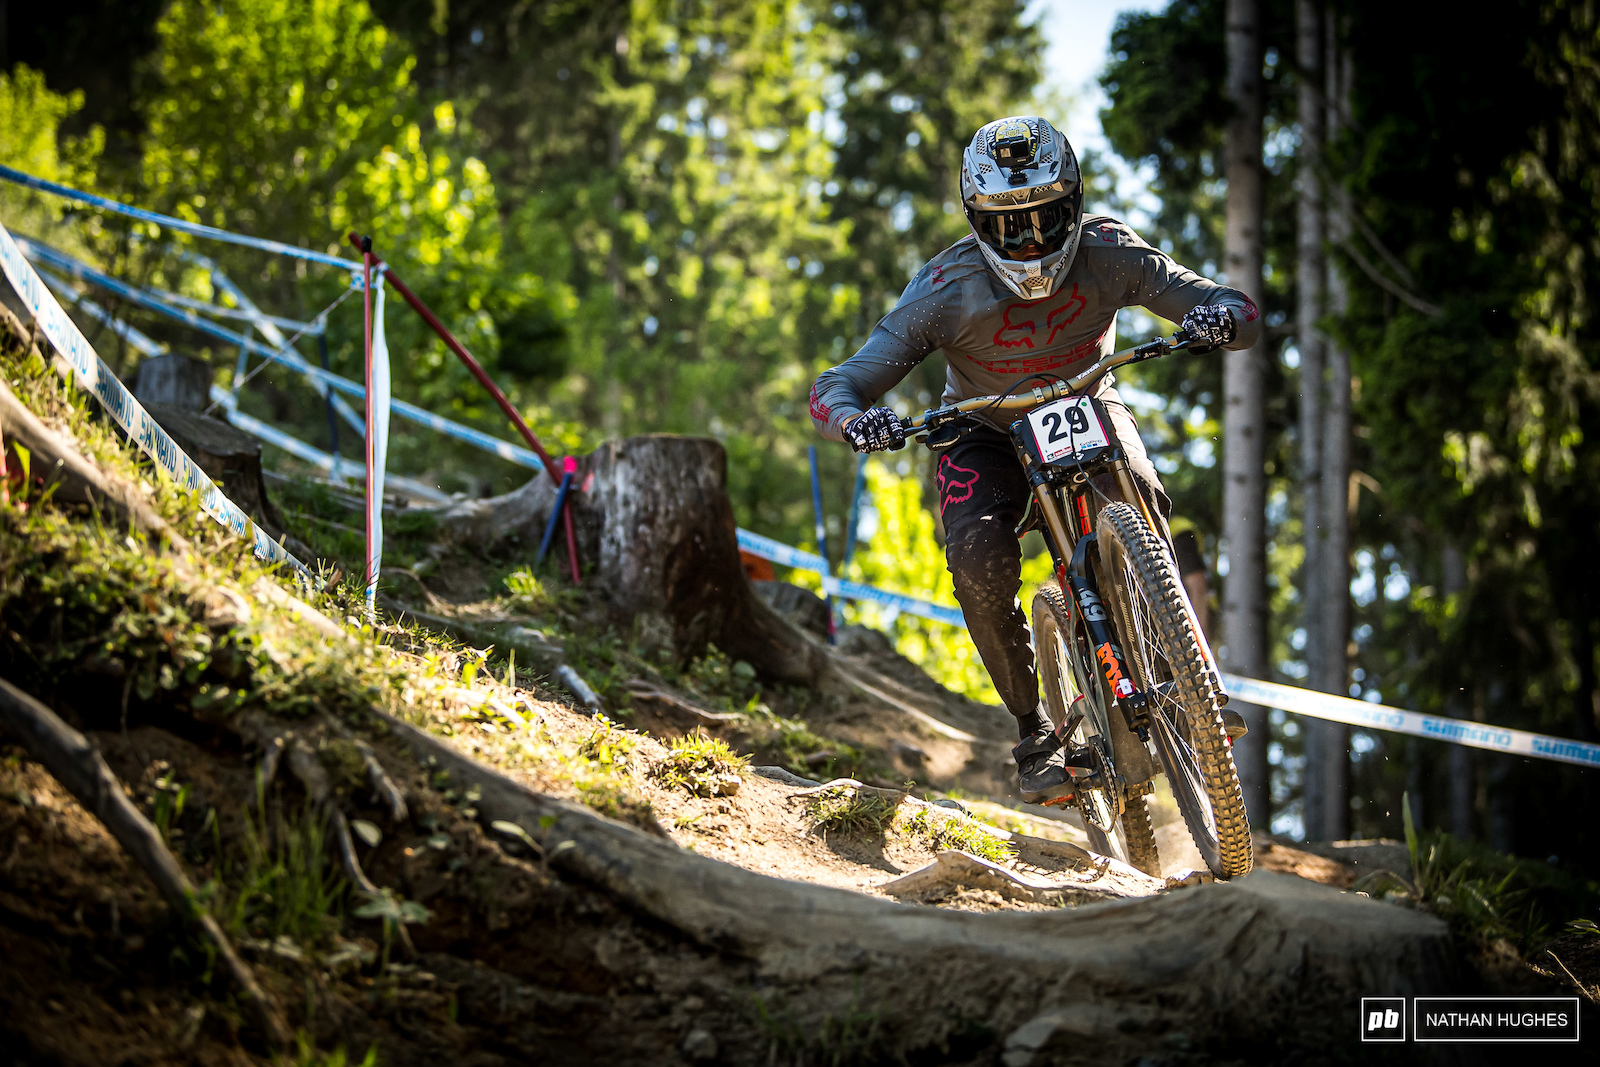 Neko Mullaly enjoyed a solid 22nd at the especially savage Fort William last weekend. Let s see if he can bring his plate into the teens here in Austria.